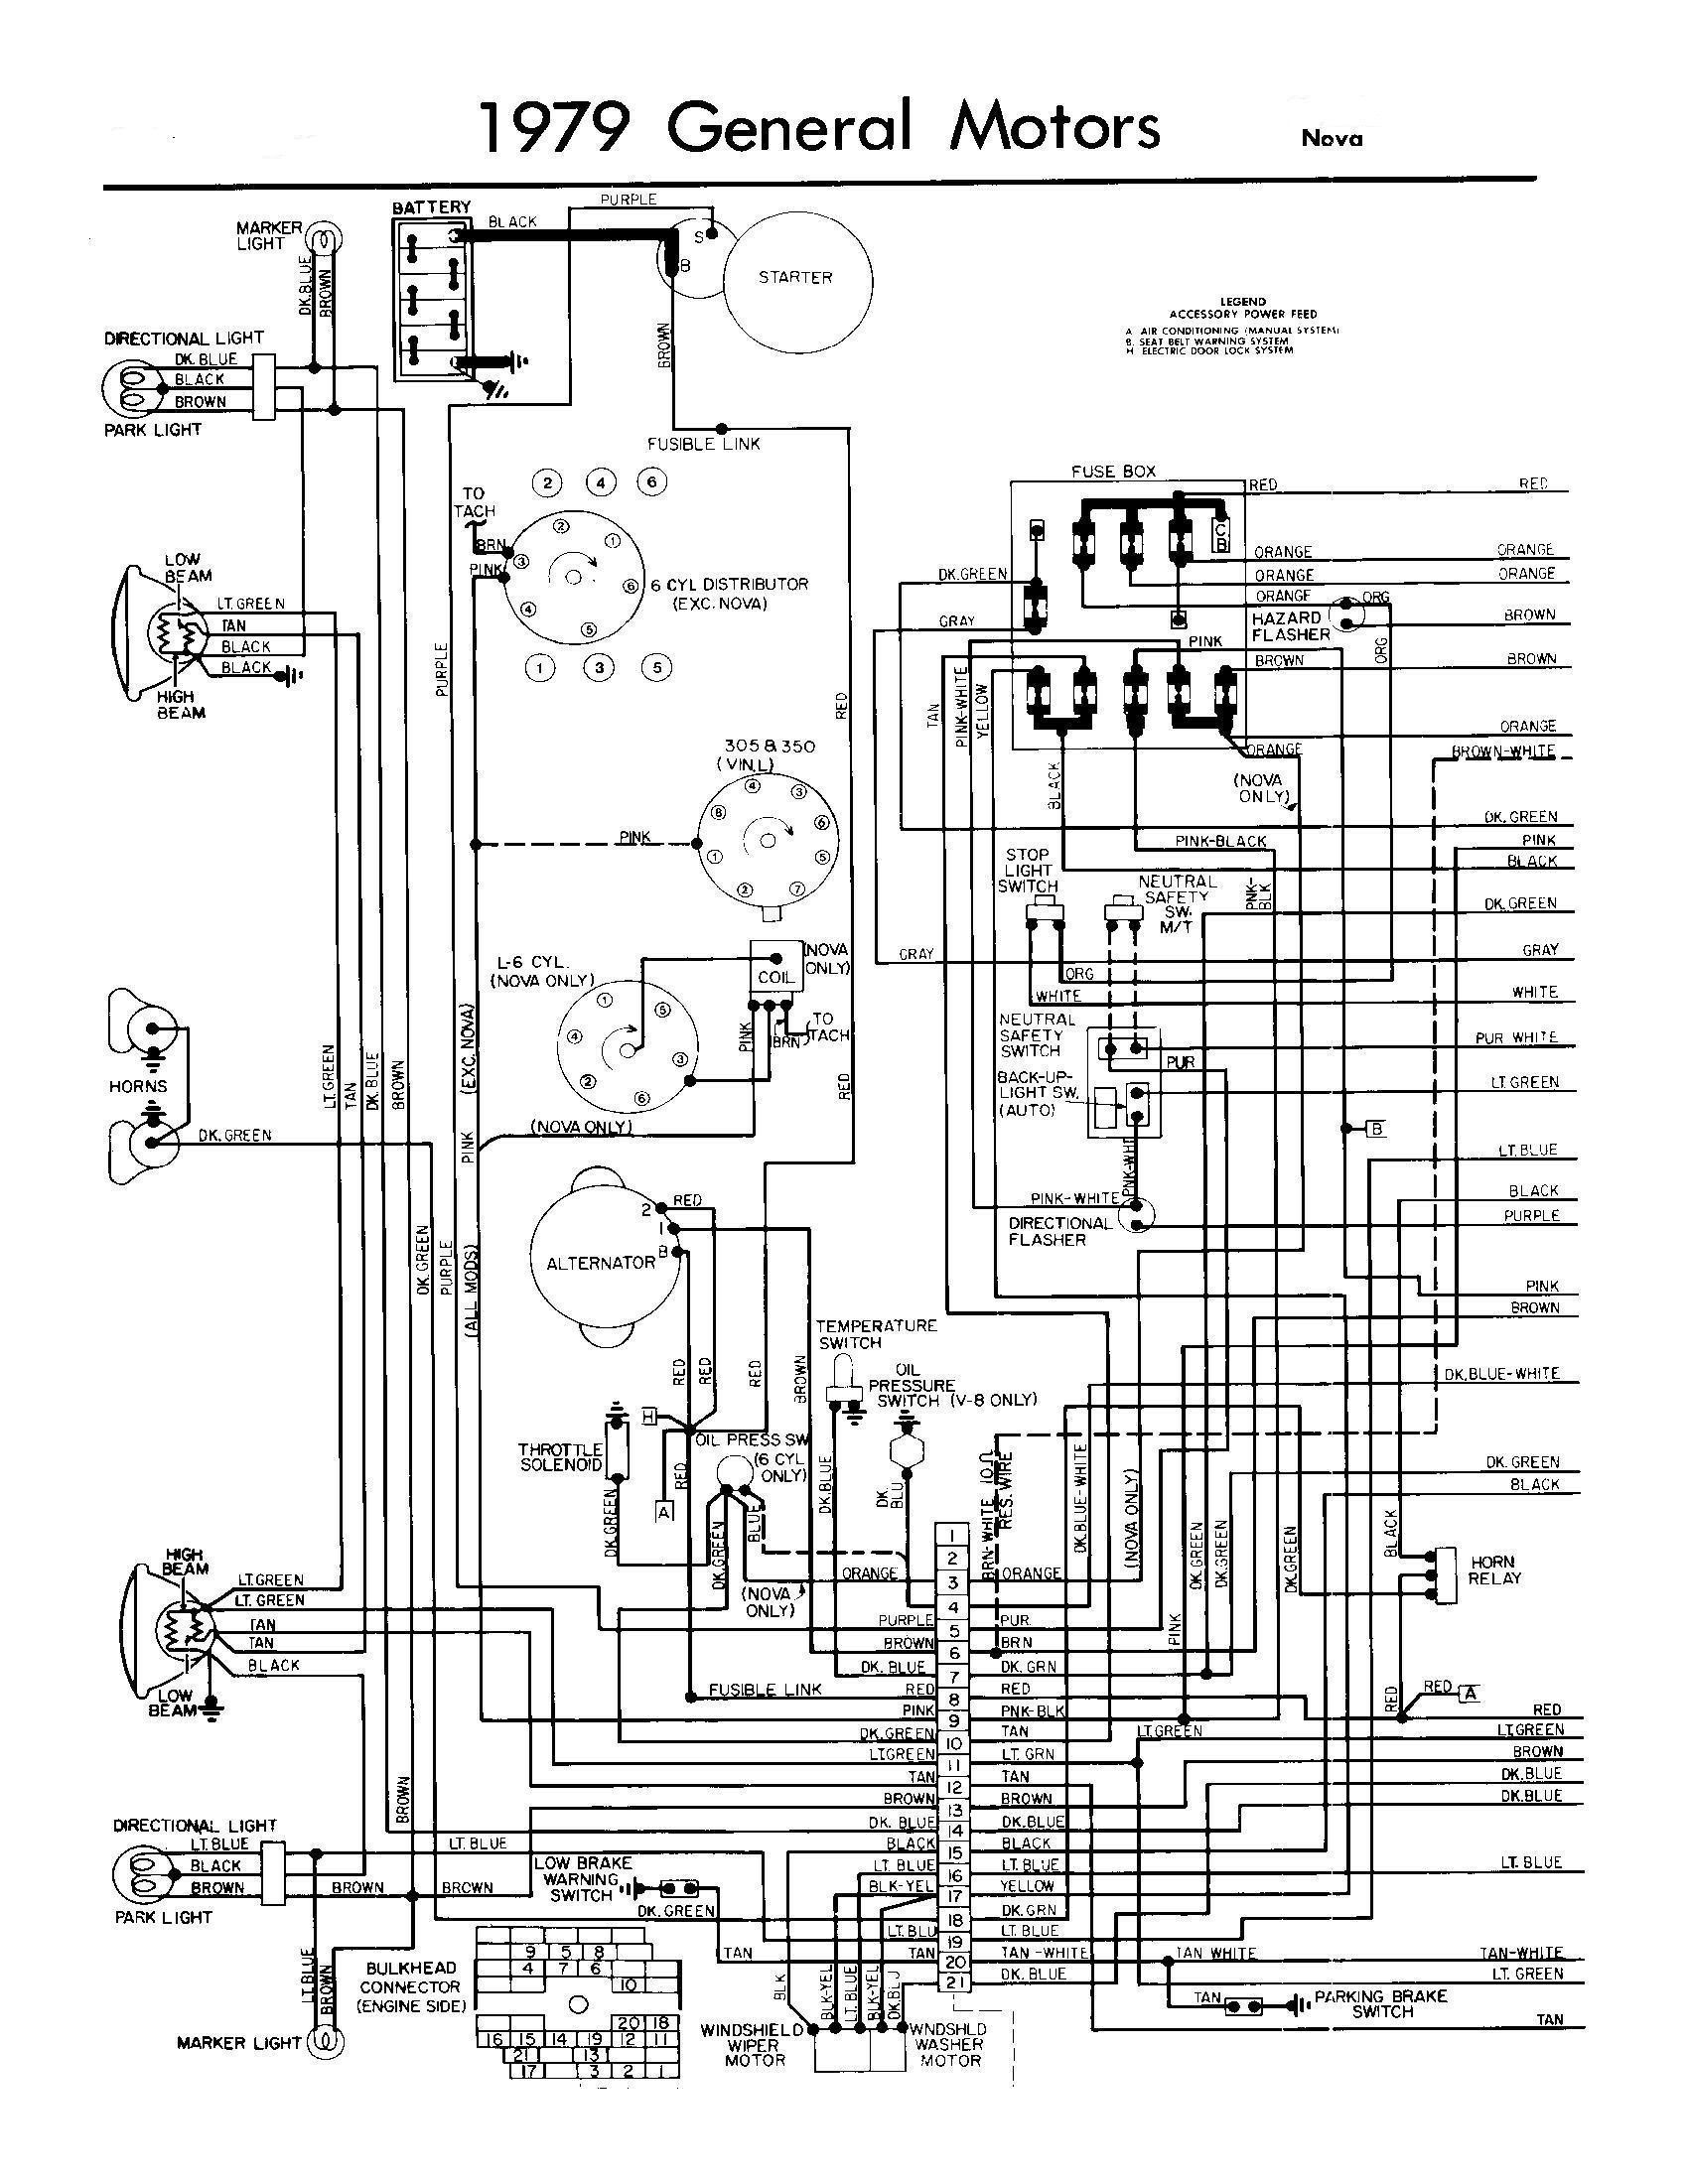 1967 camaro fuel gauge wiring diagram data wiring diagrams u2022 rh mikeadkinsguitar com